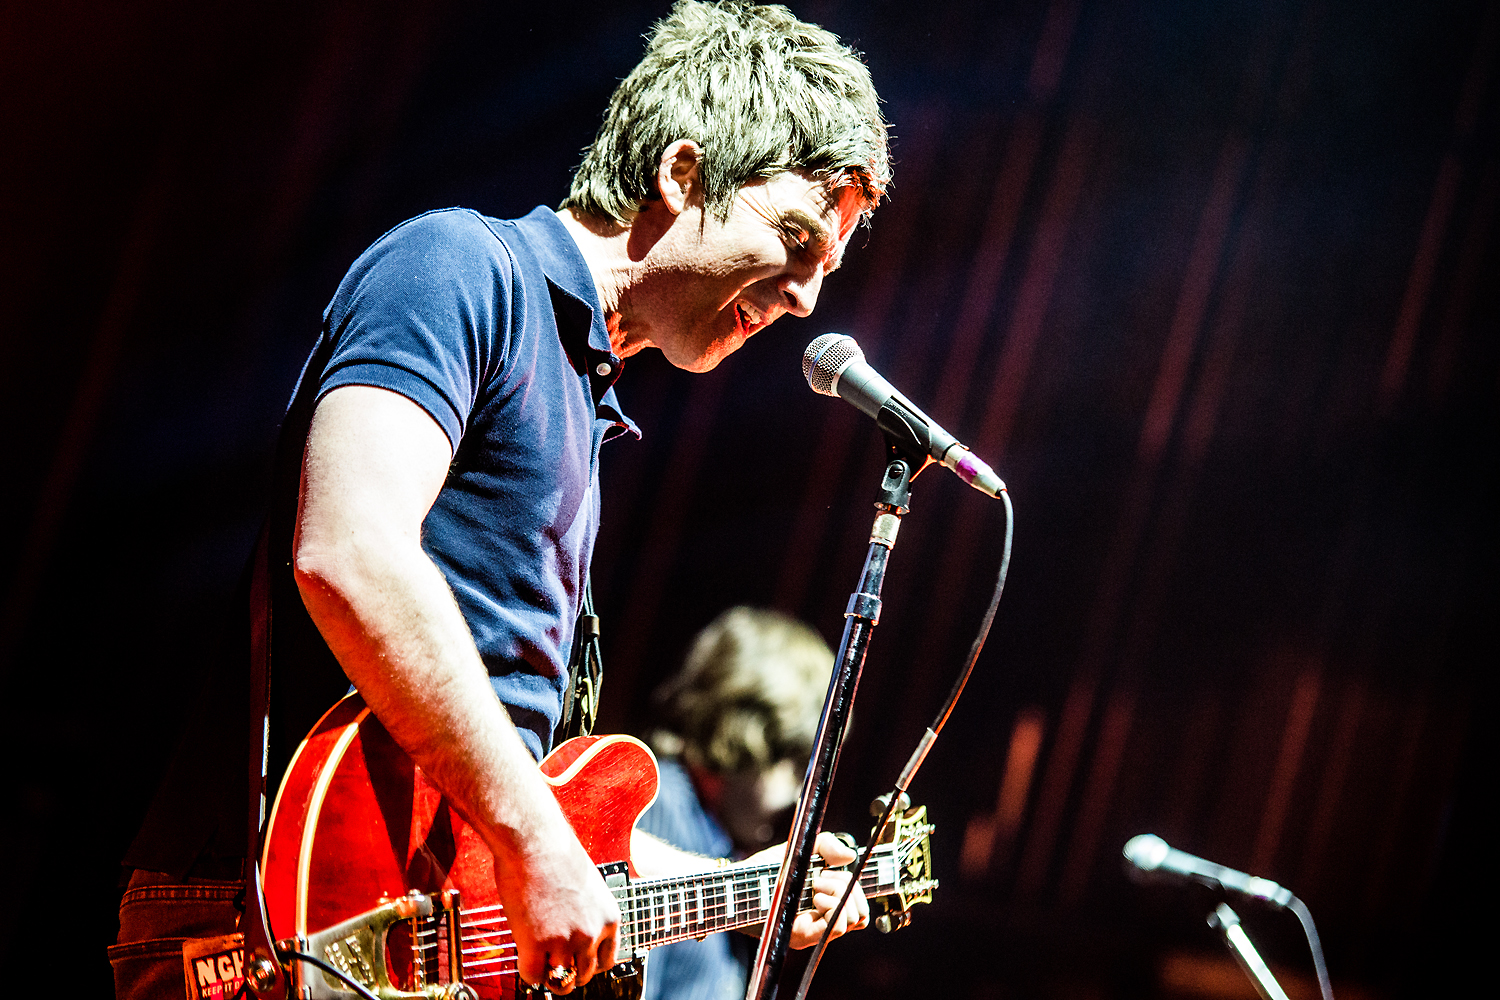 Noel Gallagher's HFB 12